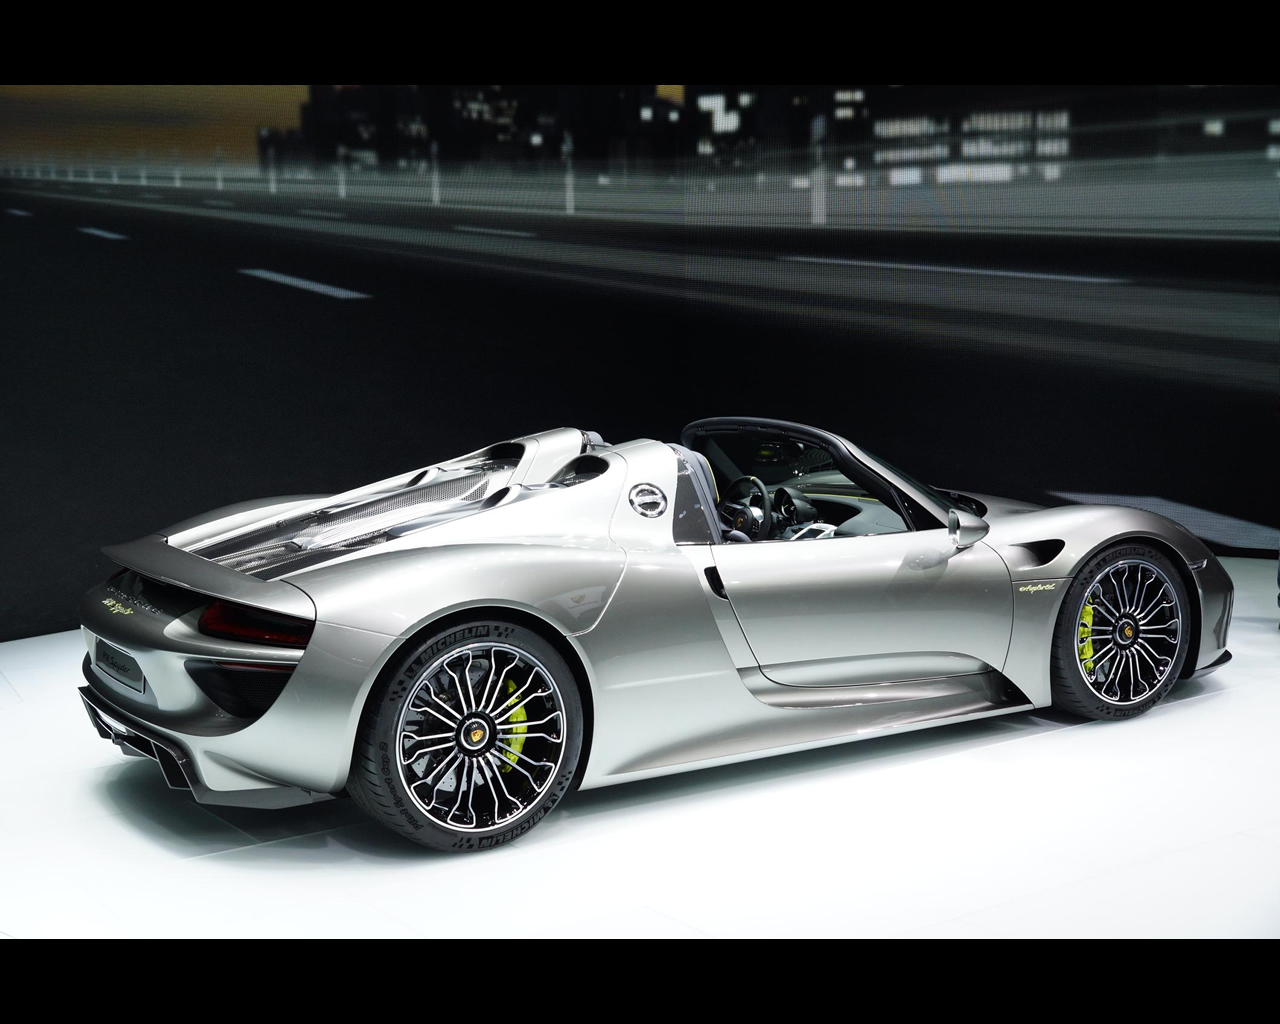 porsche 918 spyder hybrid prezzo porsche 918 spyder. Black Bedroom Furniture Sets. Home Design Ideas